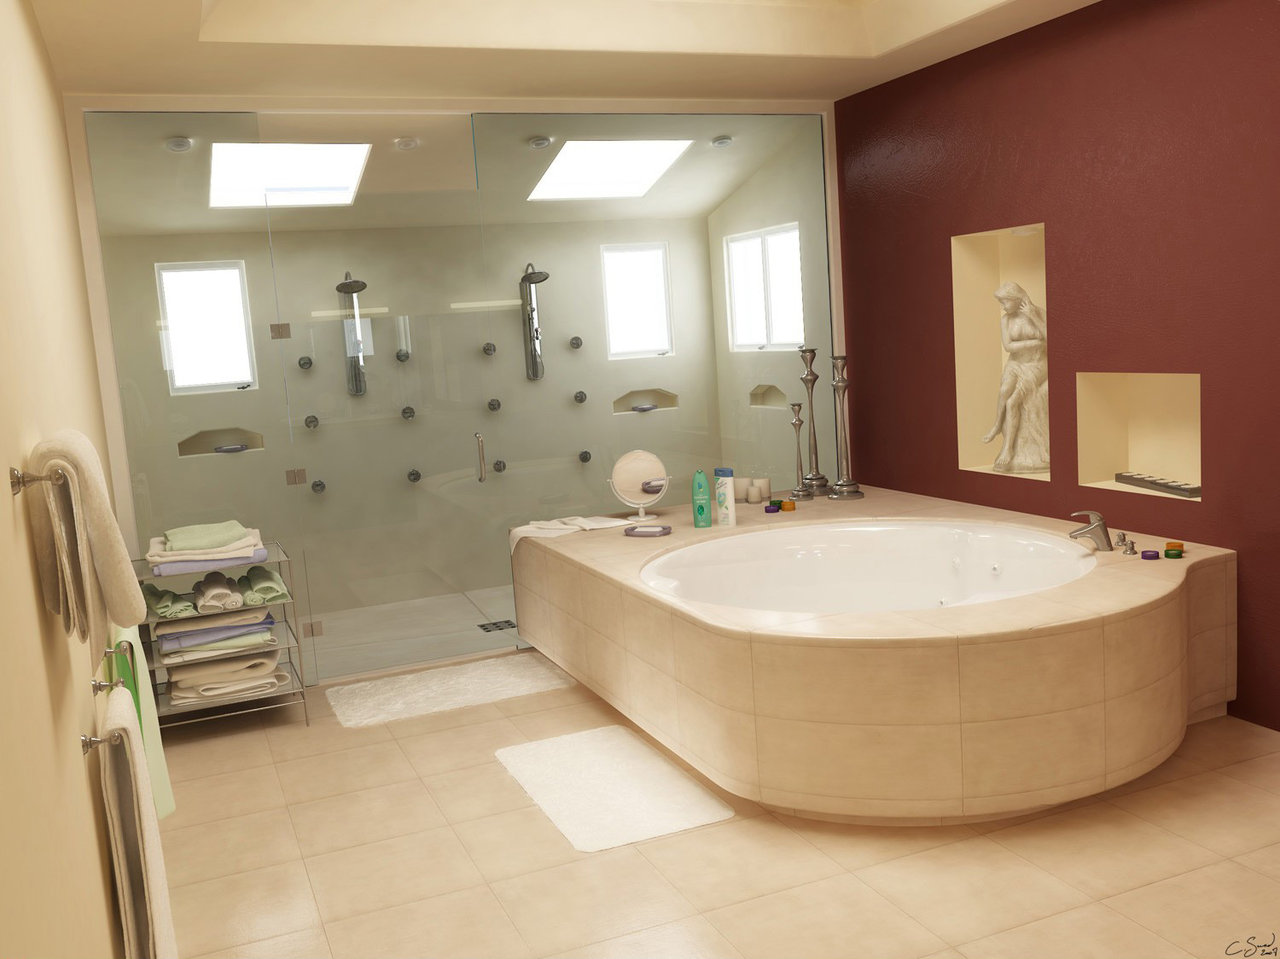 bathroom designs - Bathroom Designs Pictures